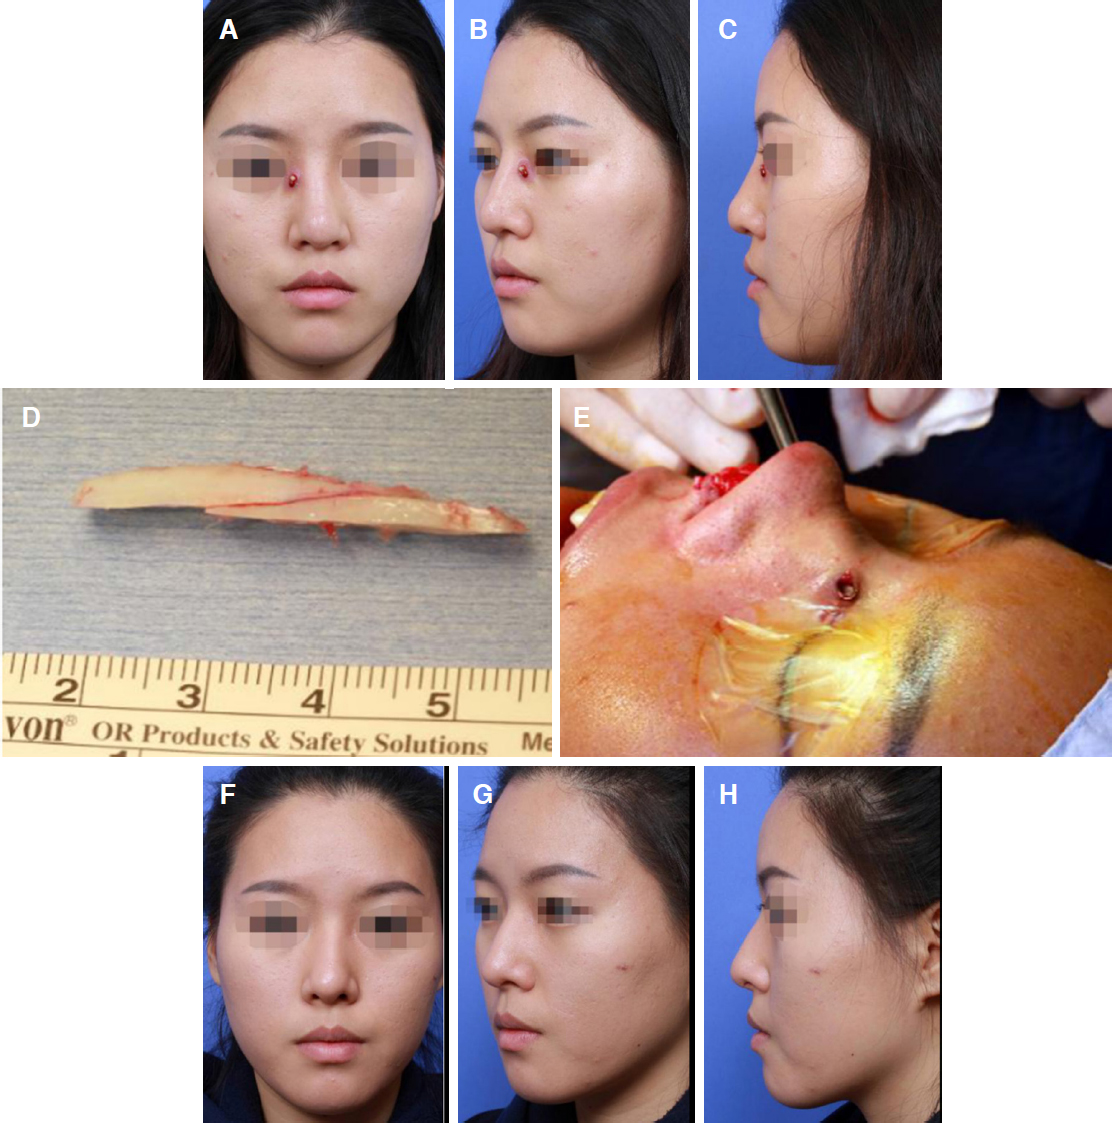 Revision rhinoplasty using autologous rib cartilage in Asians